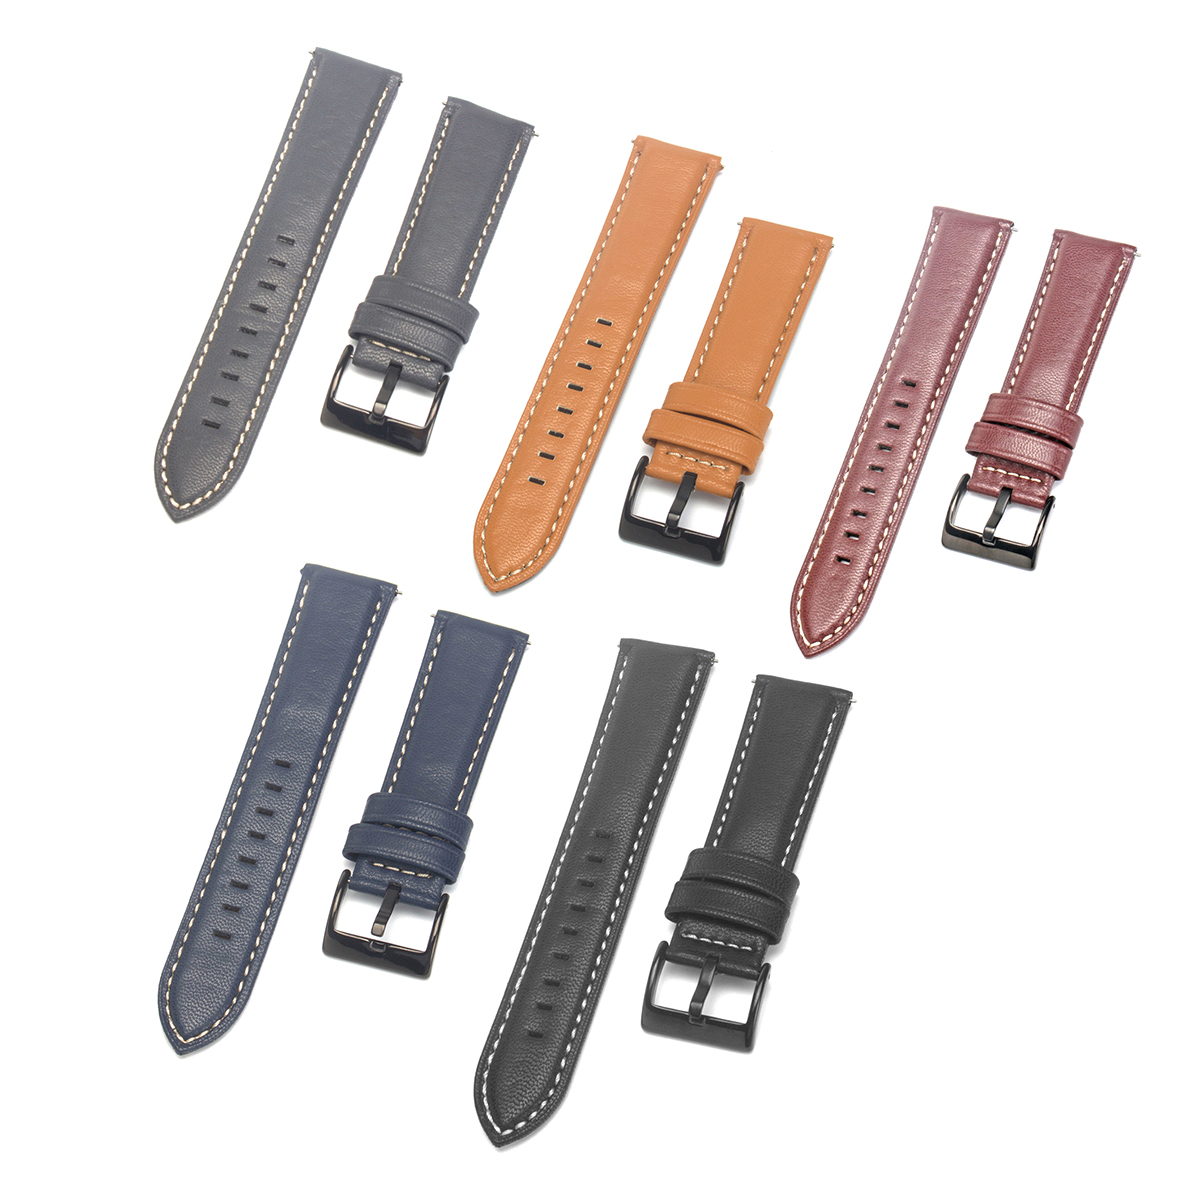 Replacement 22mm Watch Band Wrist Strap for Fossil Q Fo